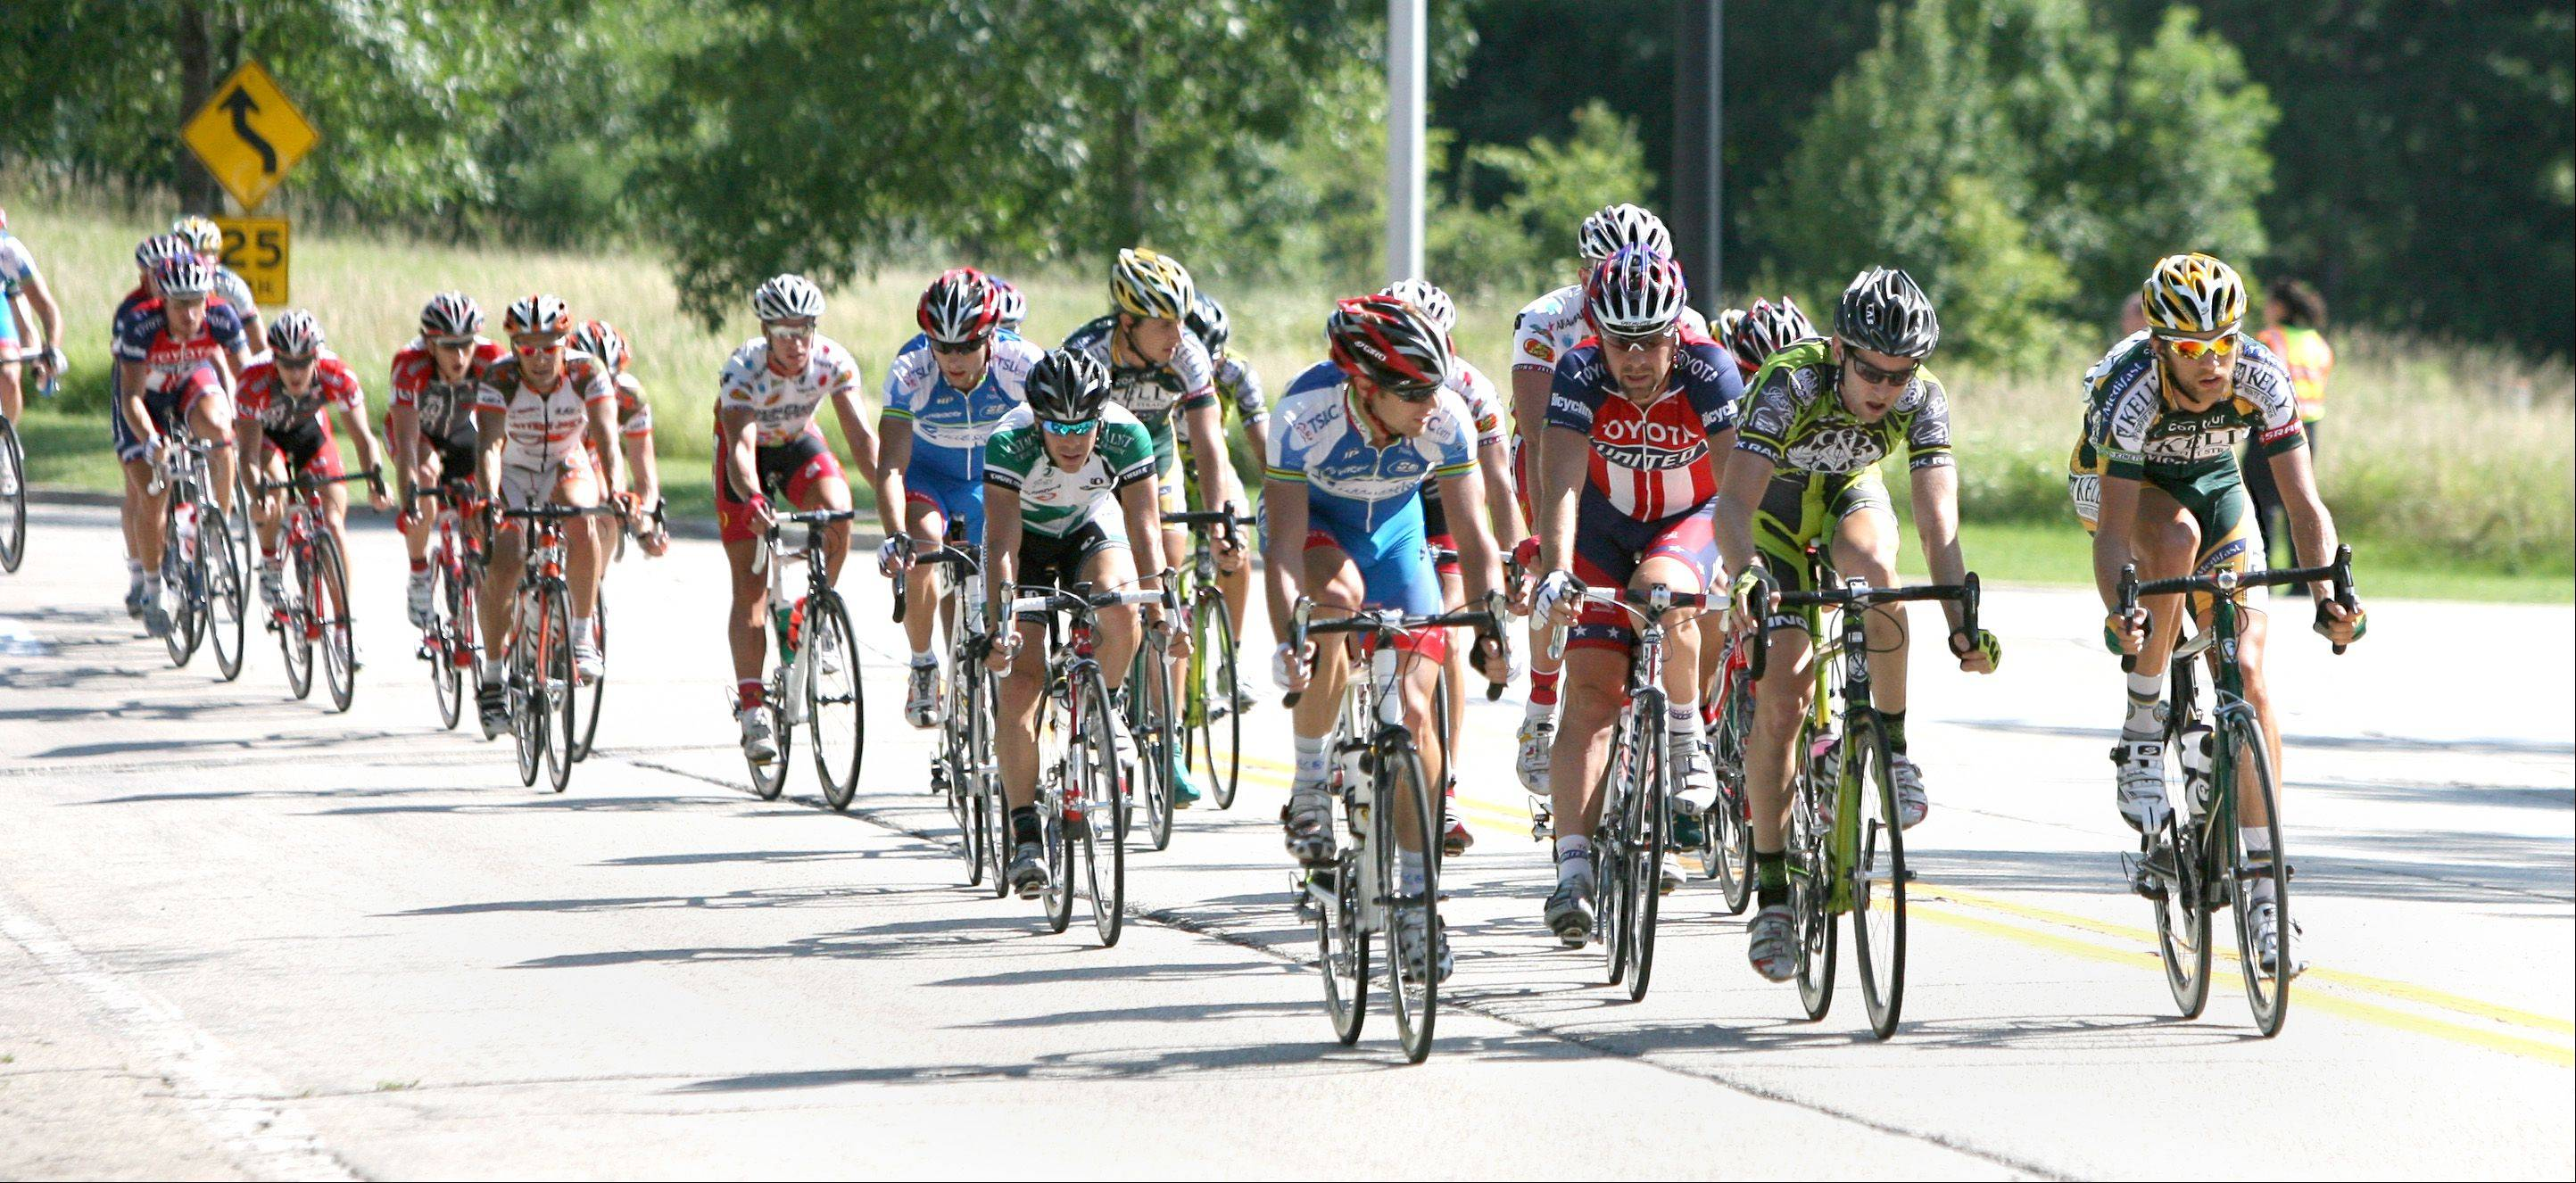 Watch for detours, closures during Tour of Elk Grove